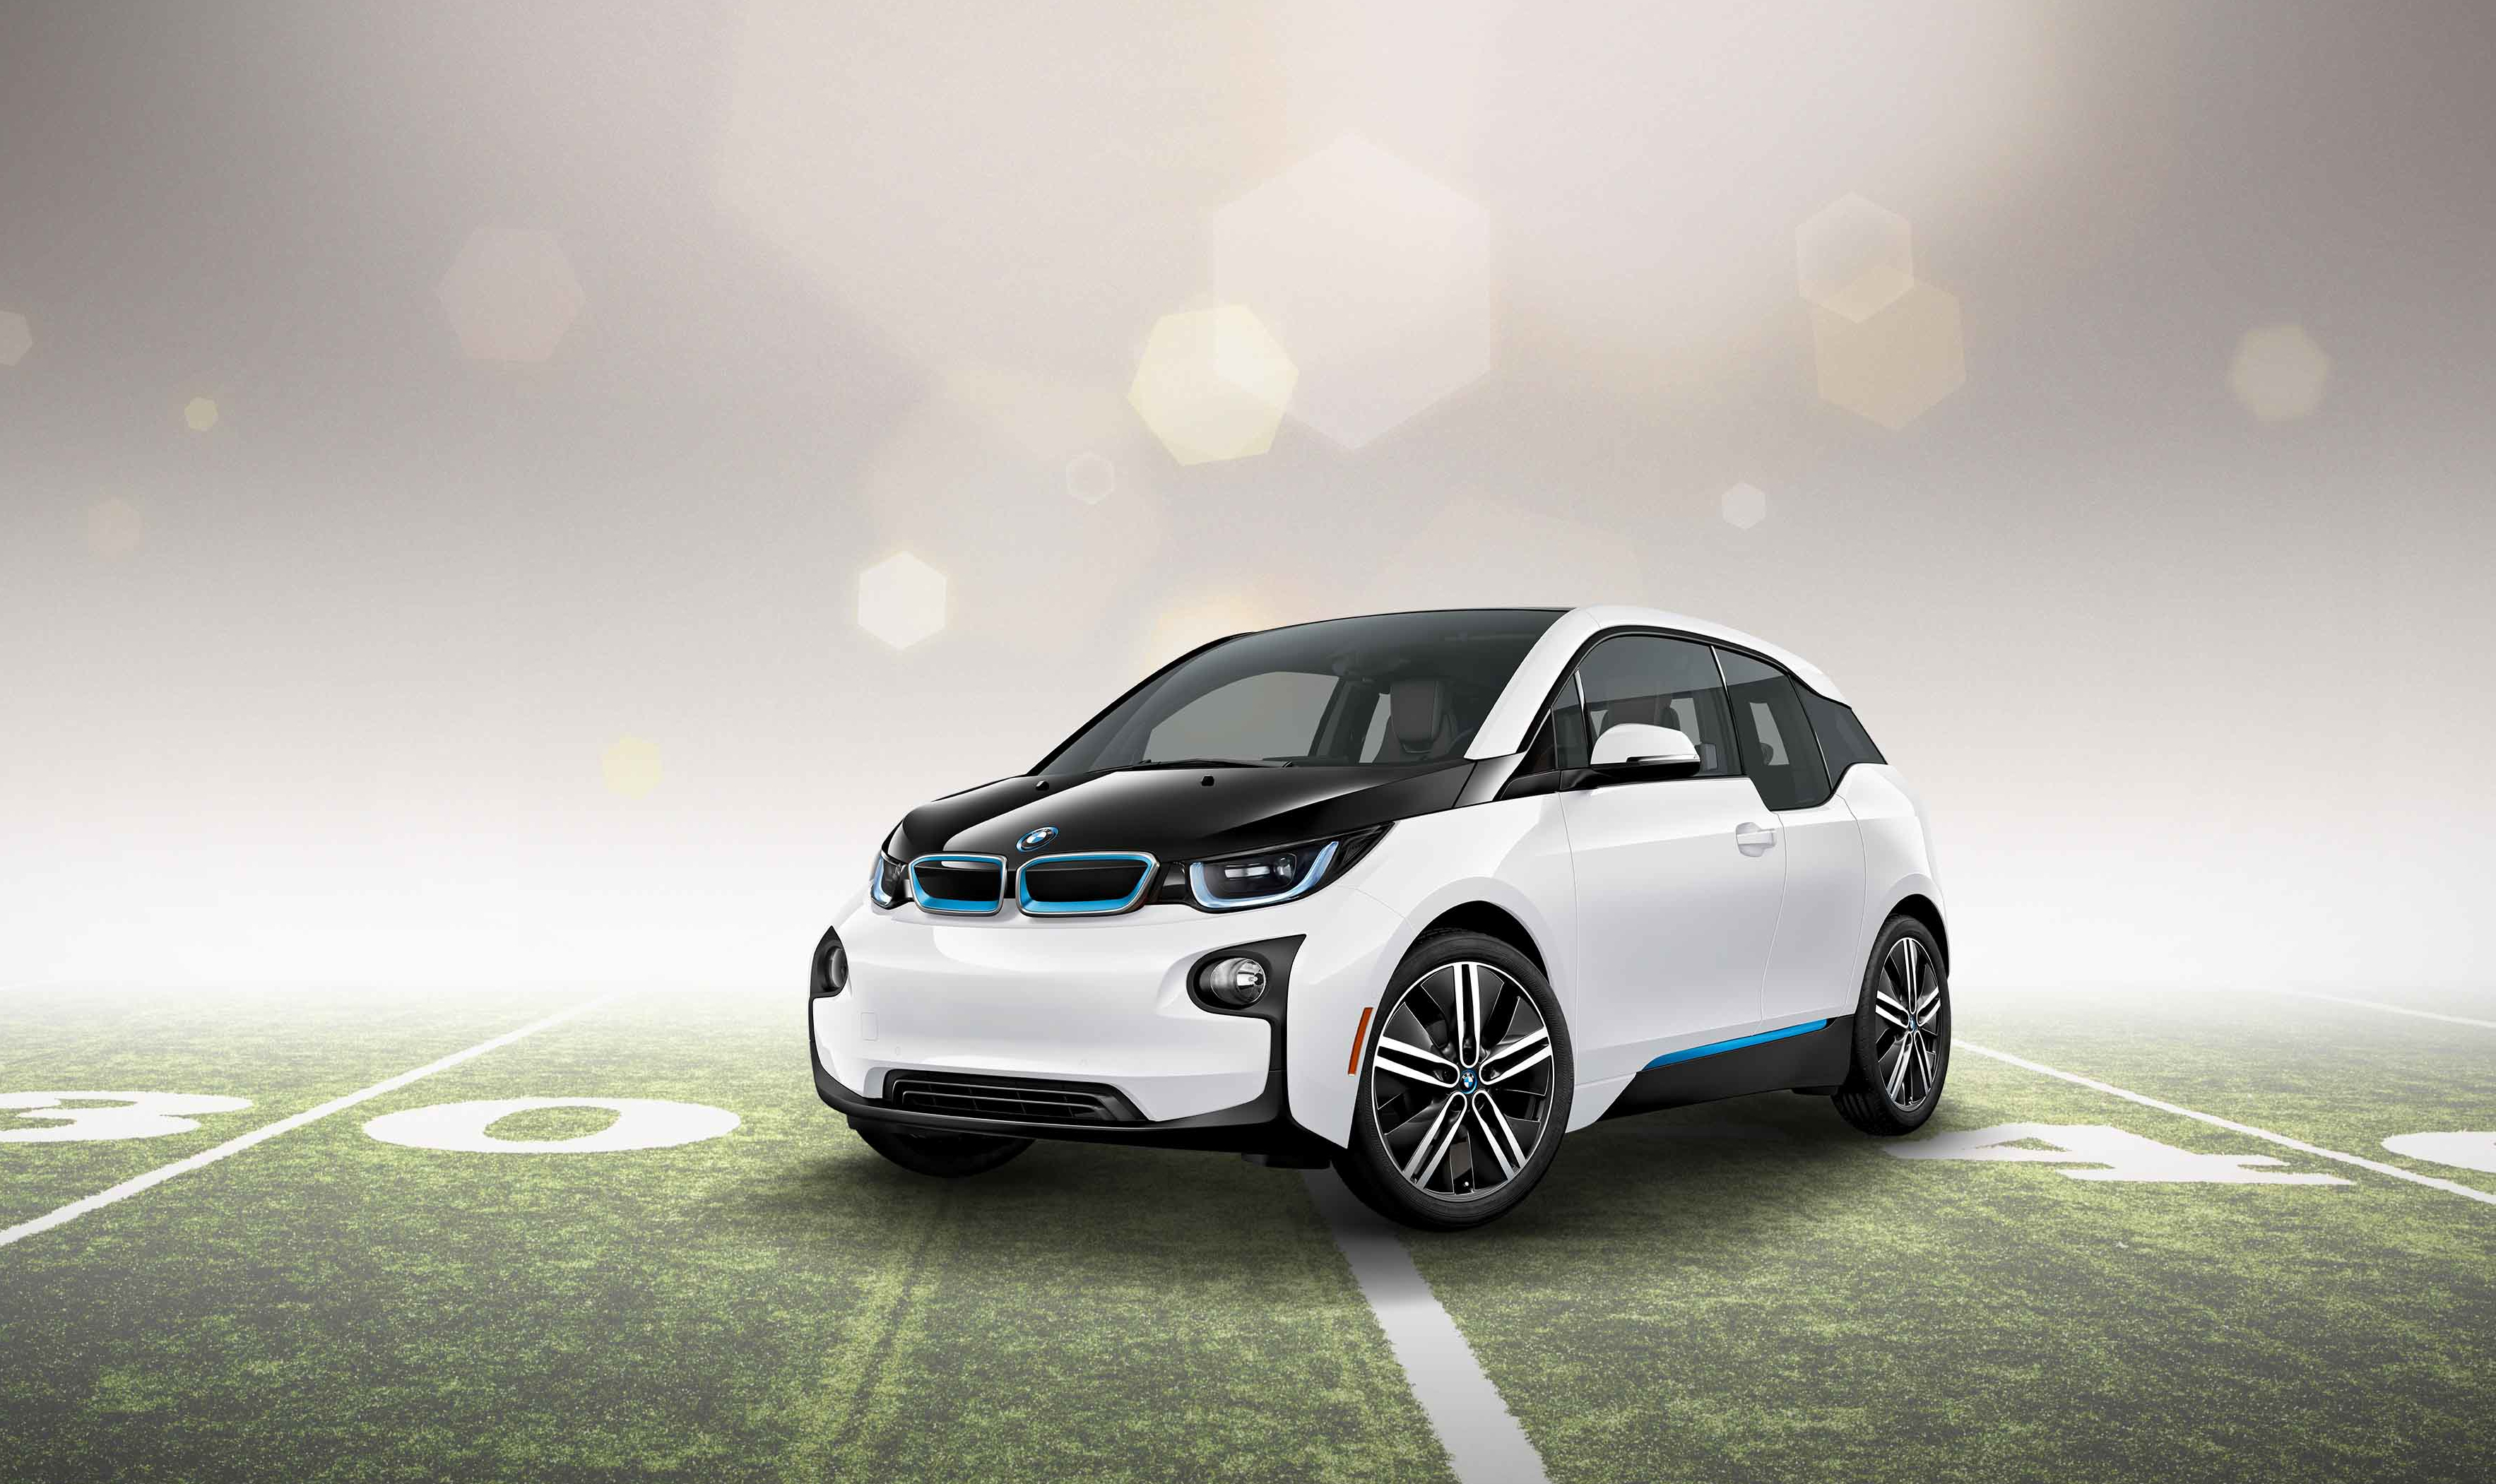 breda bmw stock station car netherlands charging at electric photo in parked the